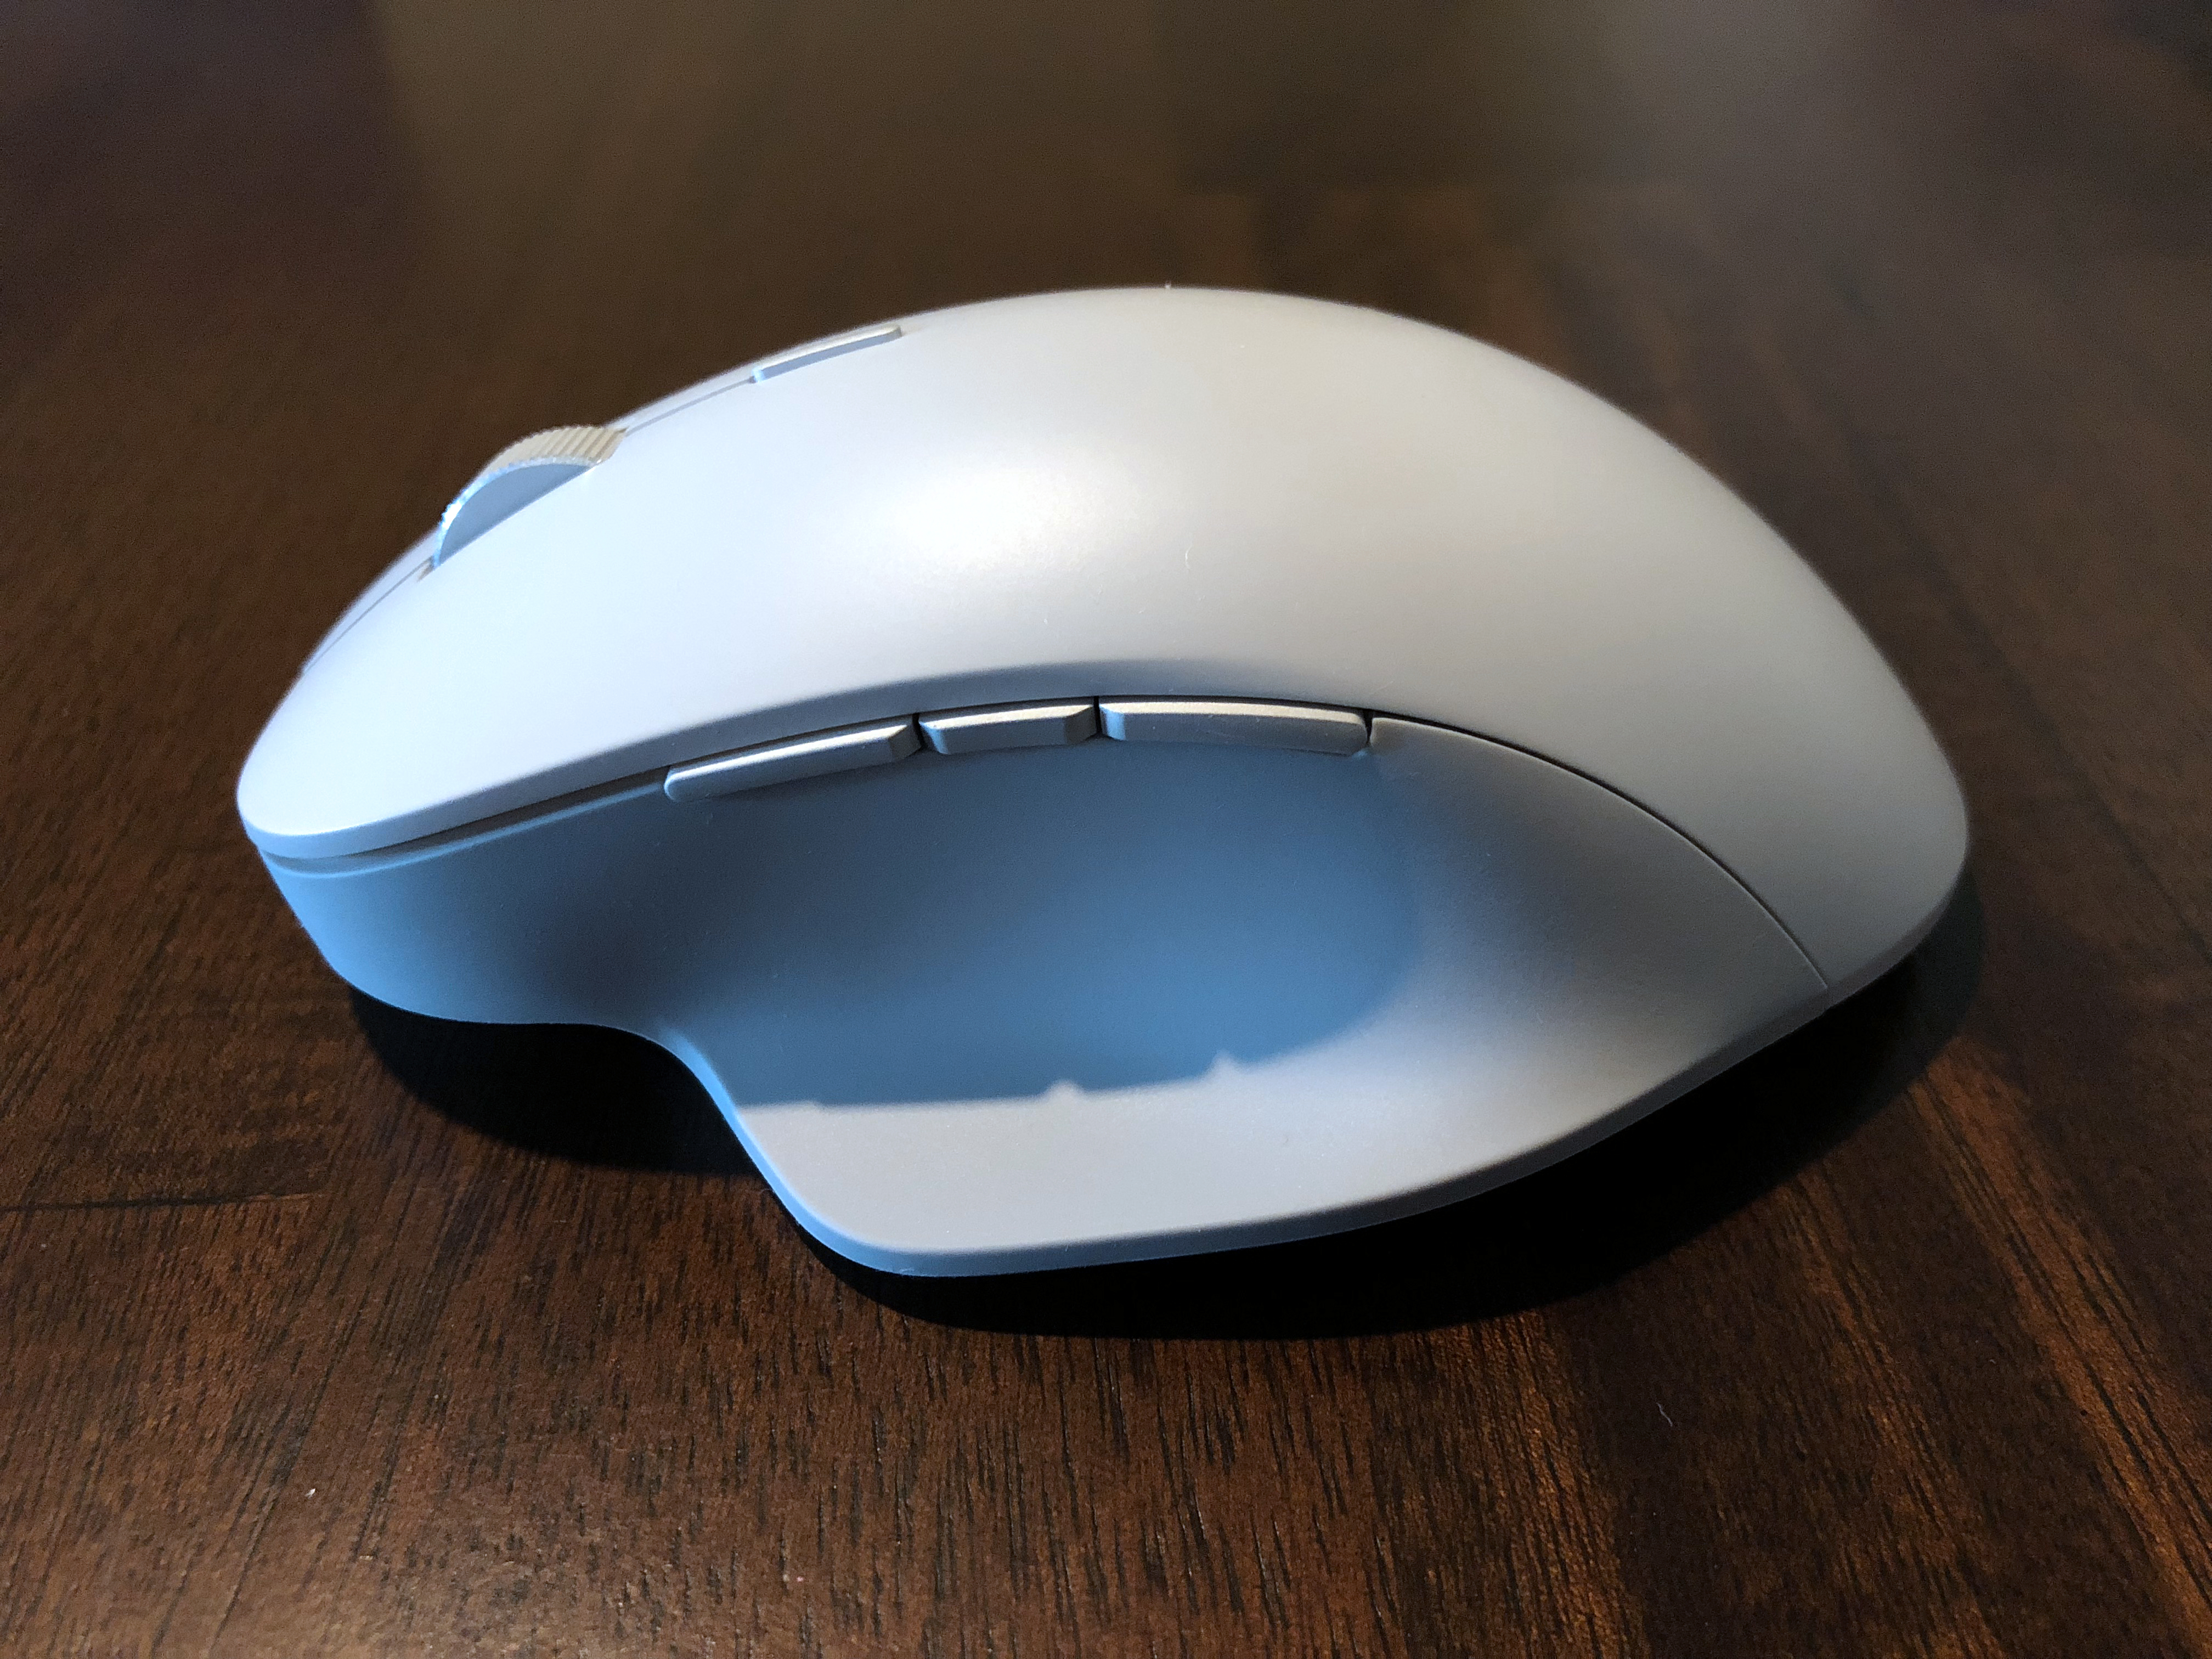 microsoft touch mouse review mac